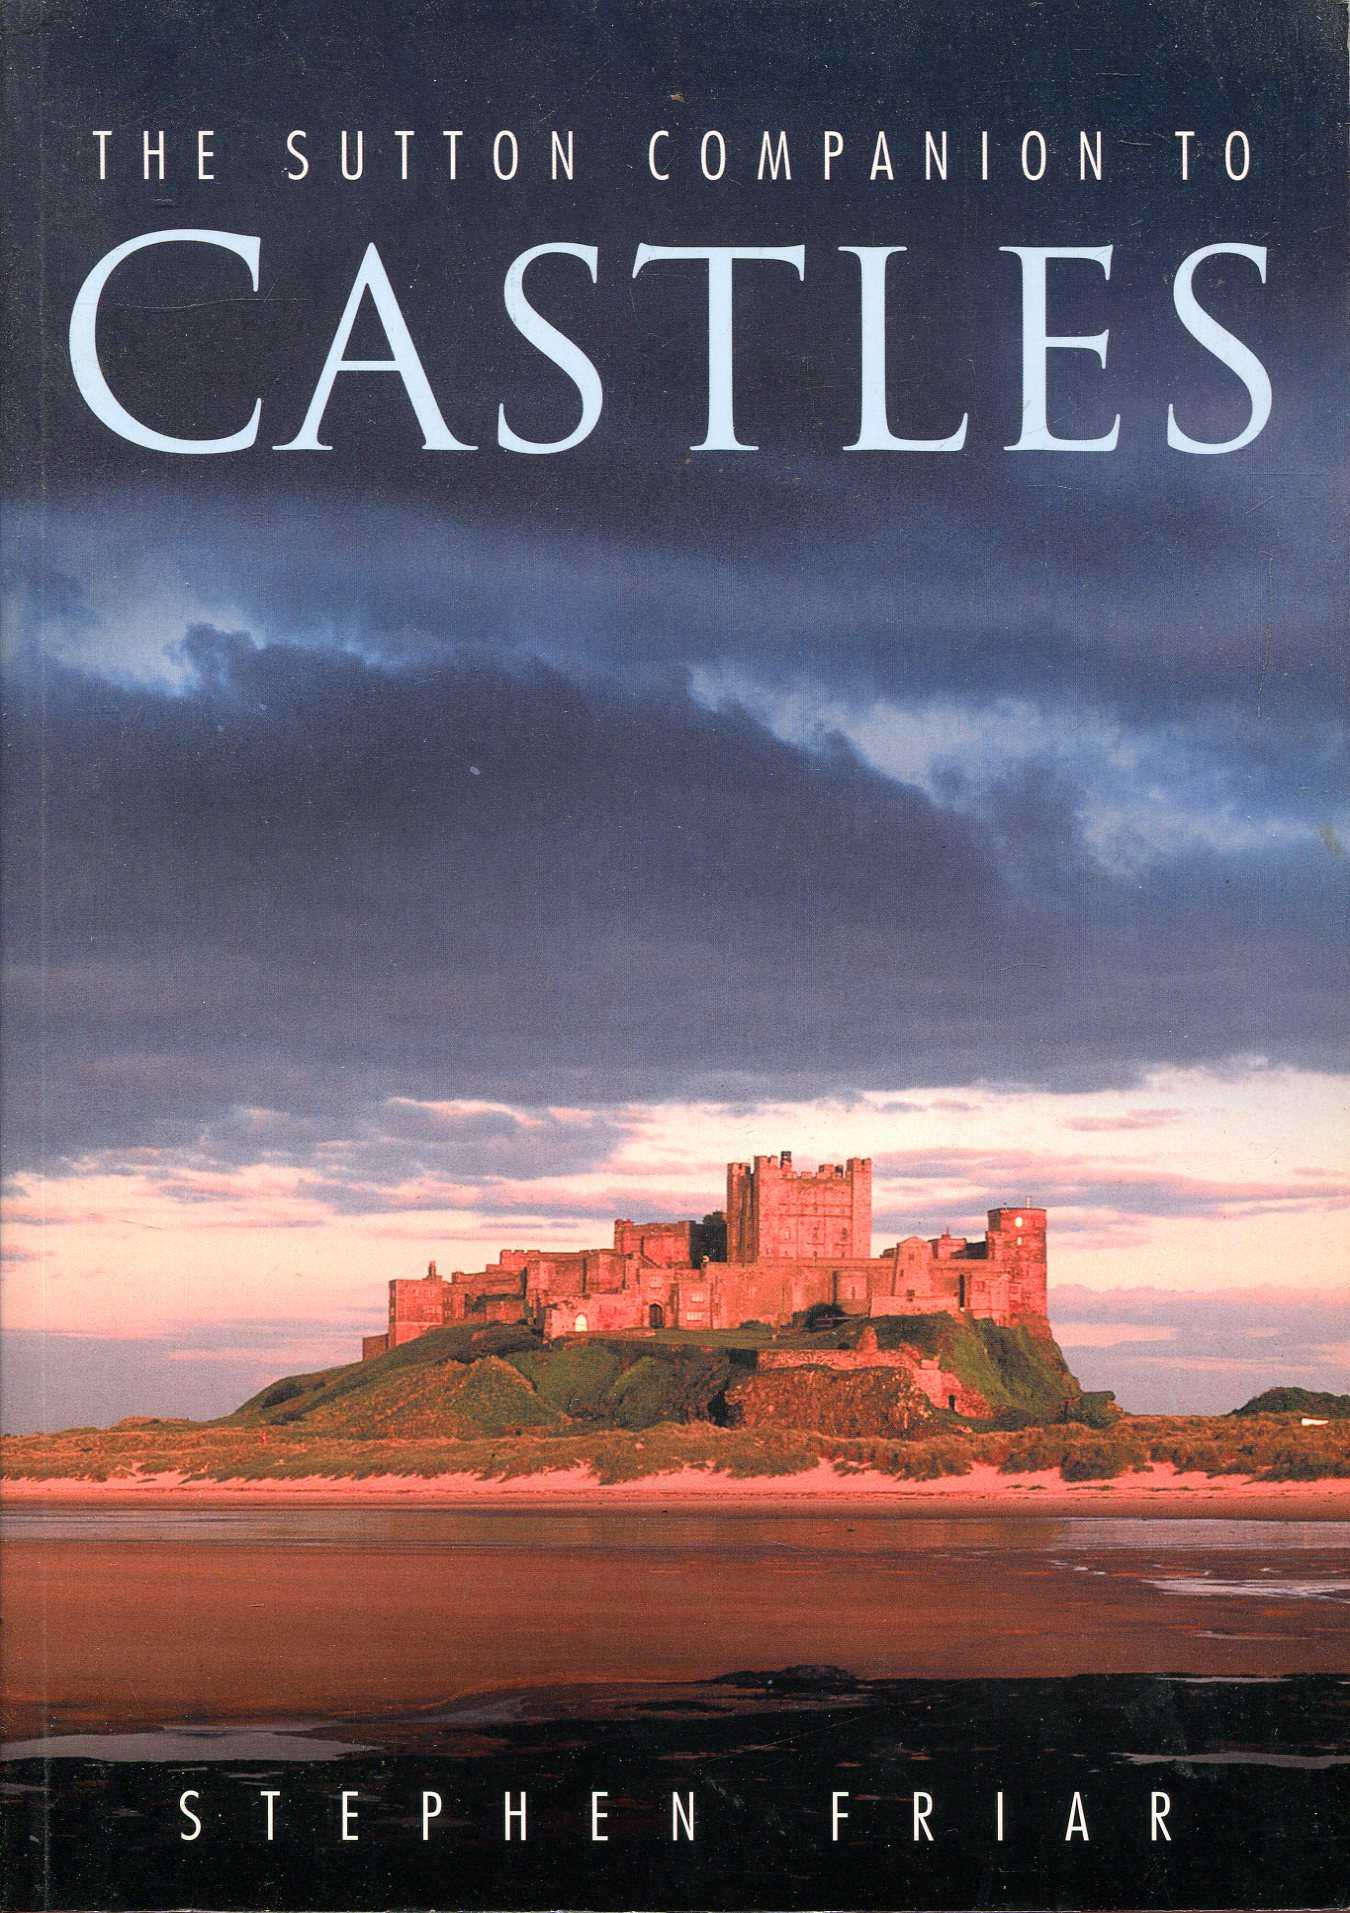 Image for The Sutton Companion to Castles